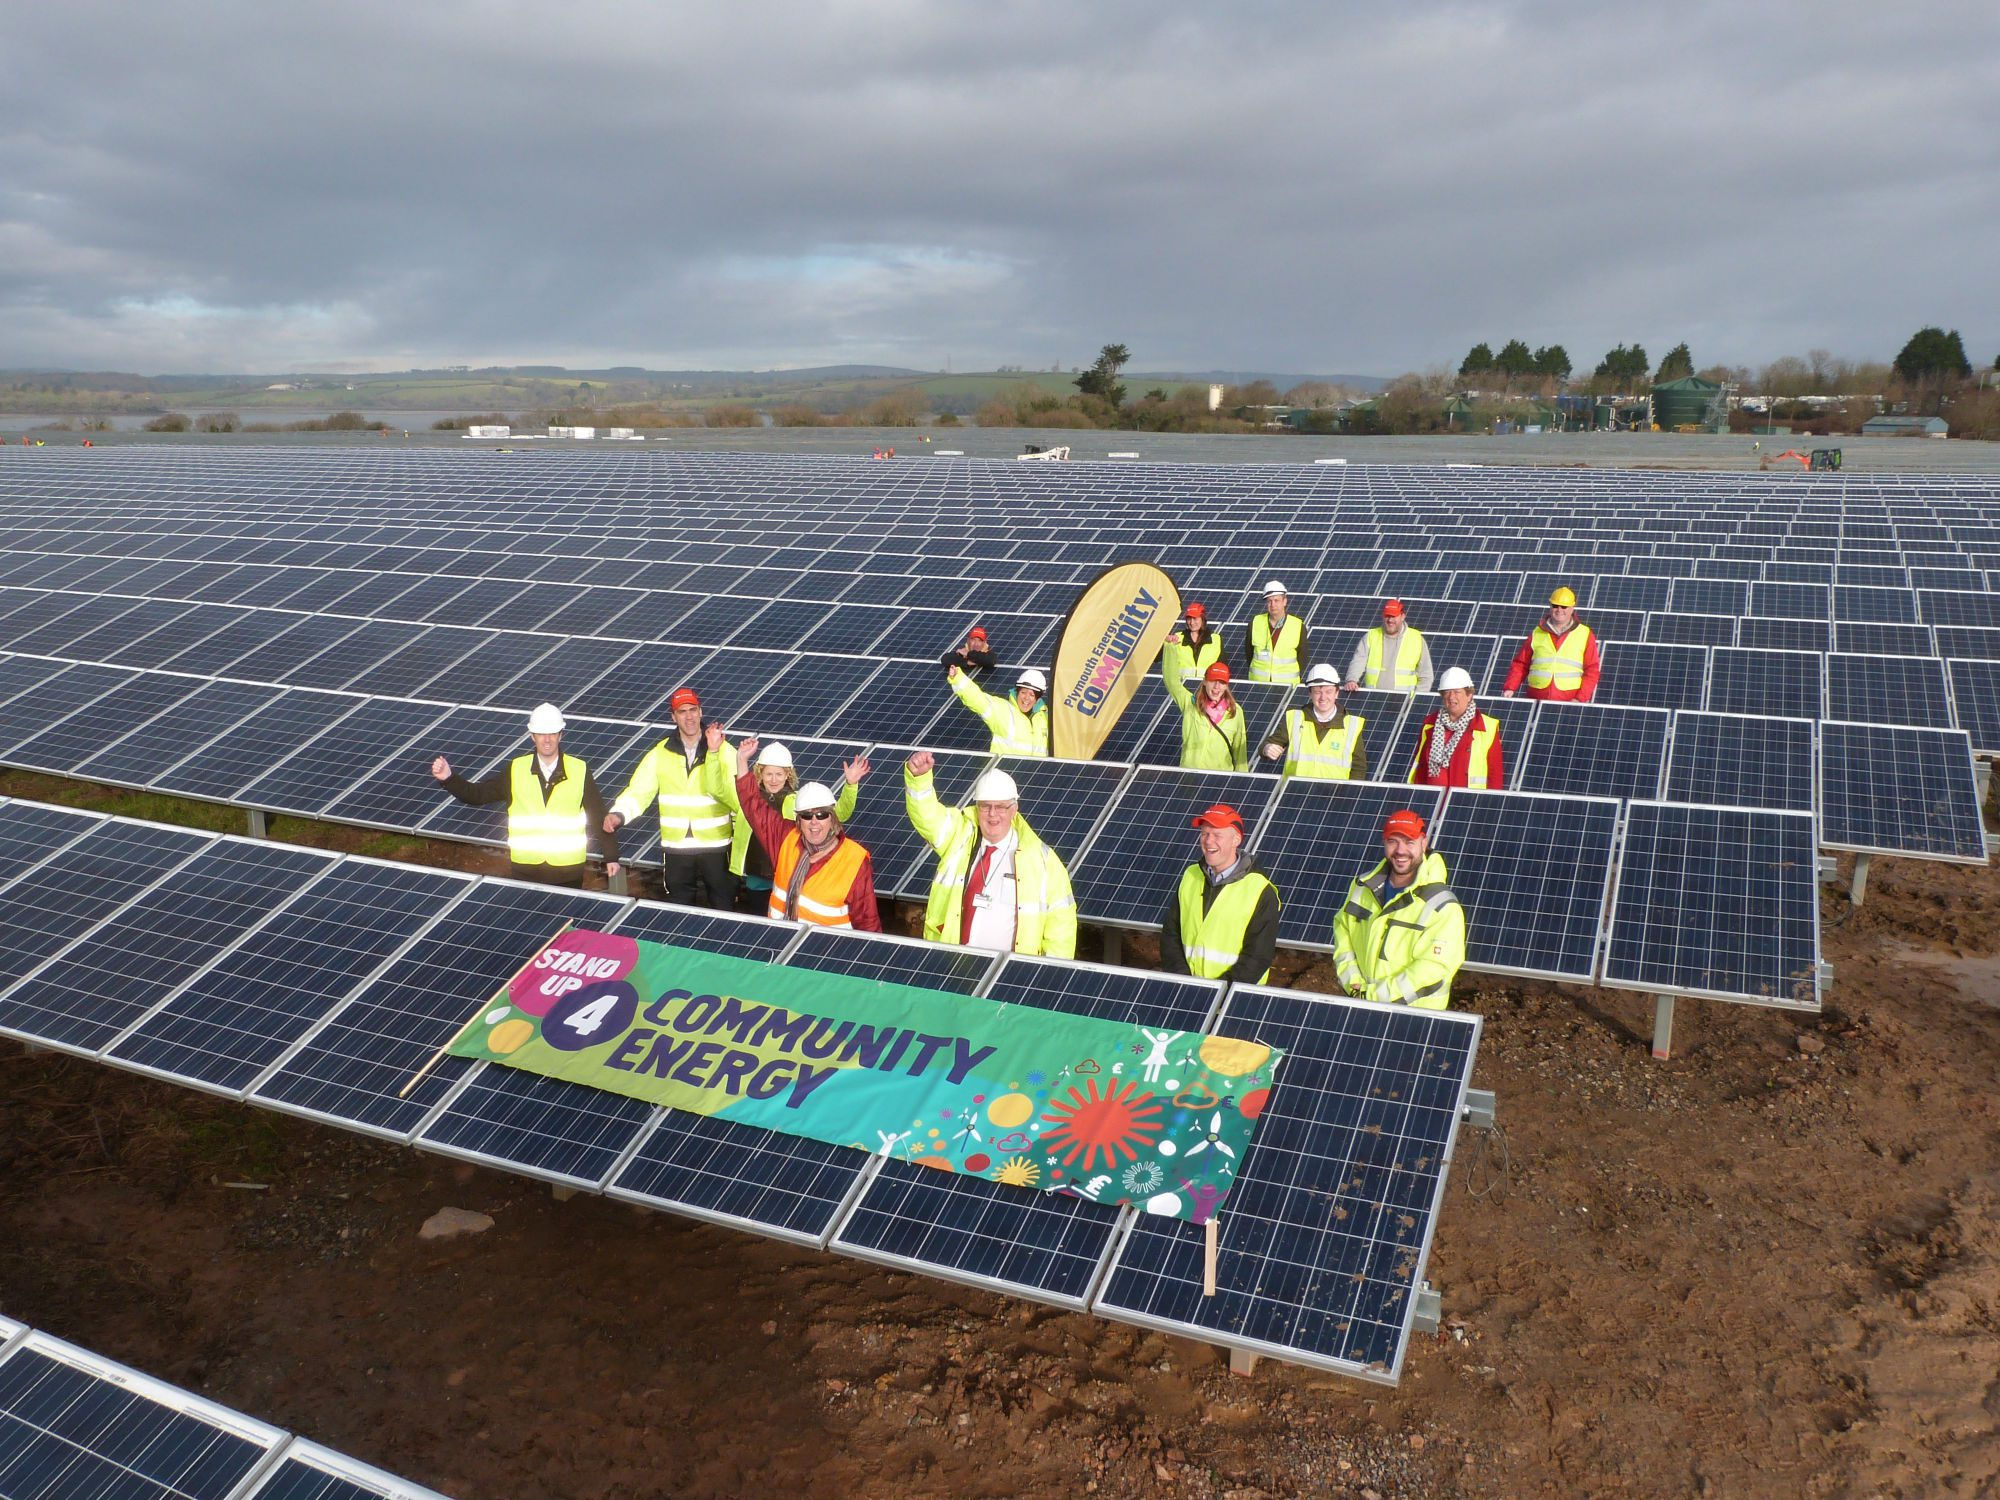 People powered – building a fairer energy system